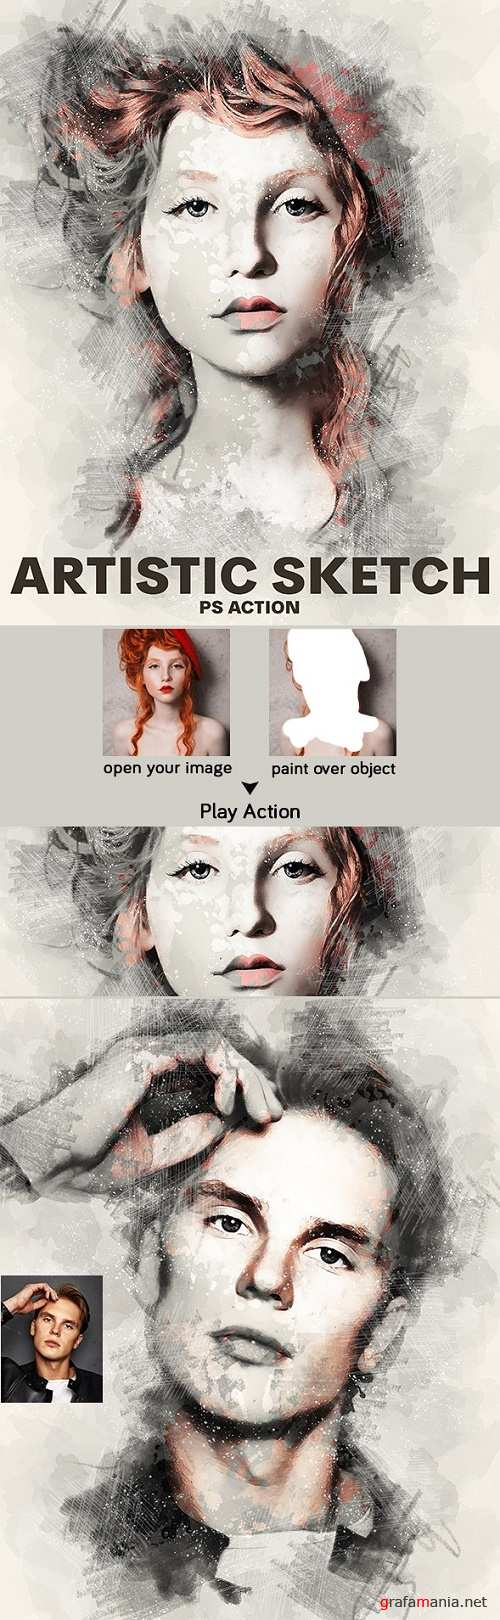 Artistic Sketch Photoshop Action - 23361679